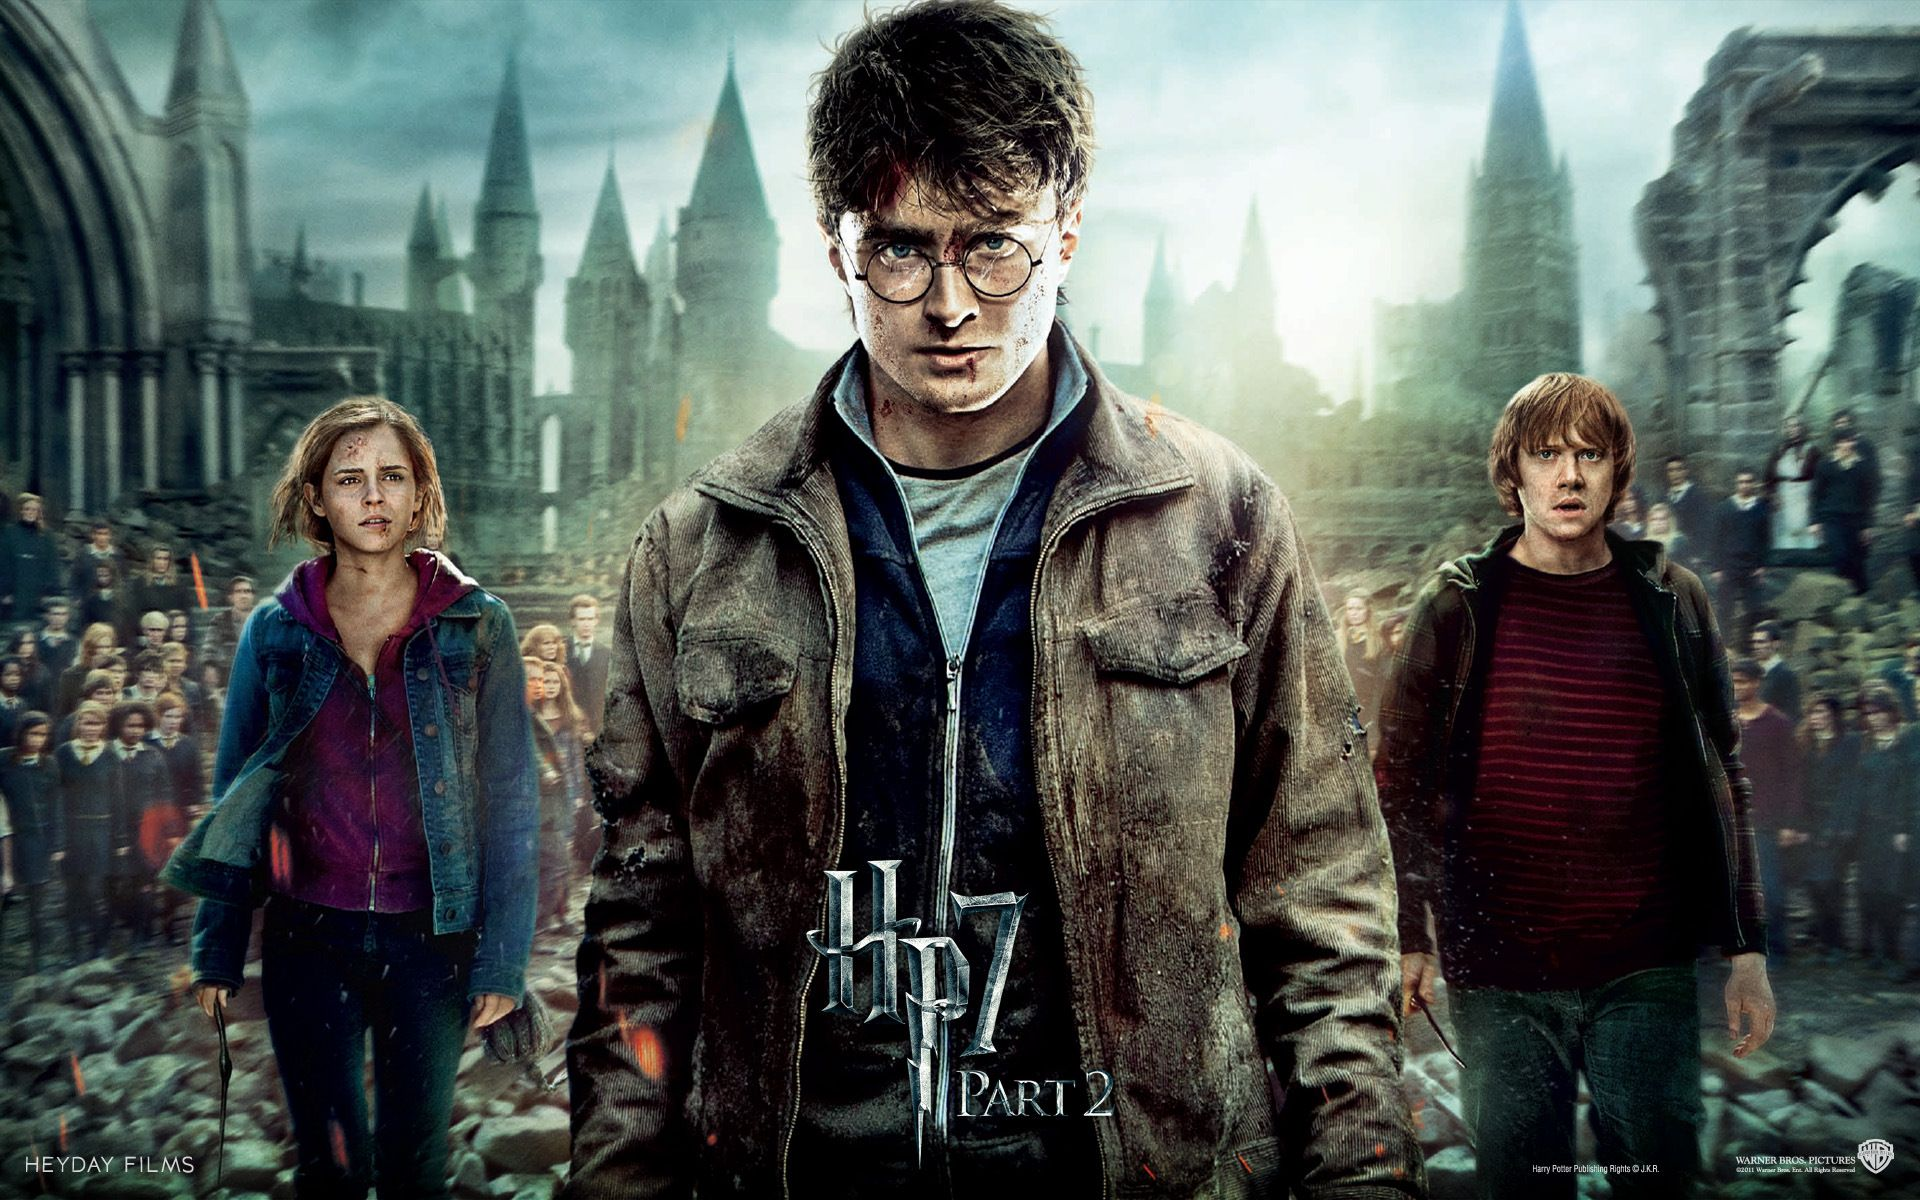 Harry Potter 7 Wallpapers - Top Free Harry Potter 7 Backgrounds -  WallpaperAccess